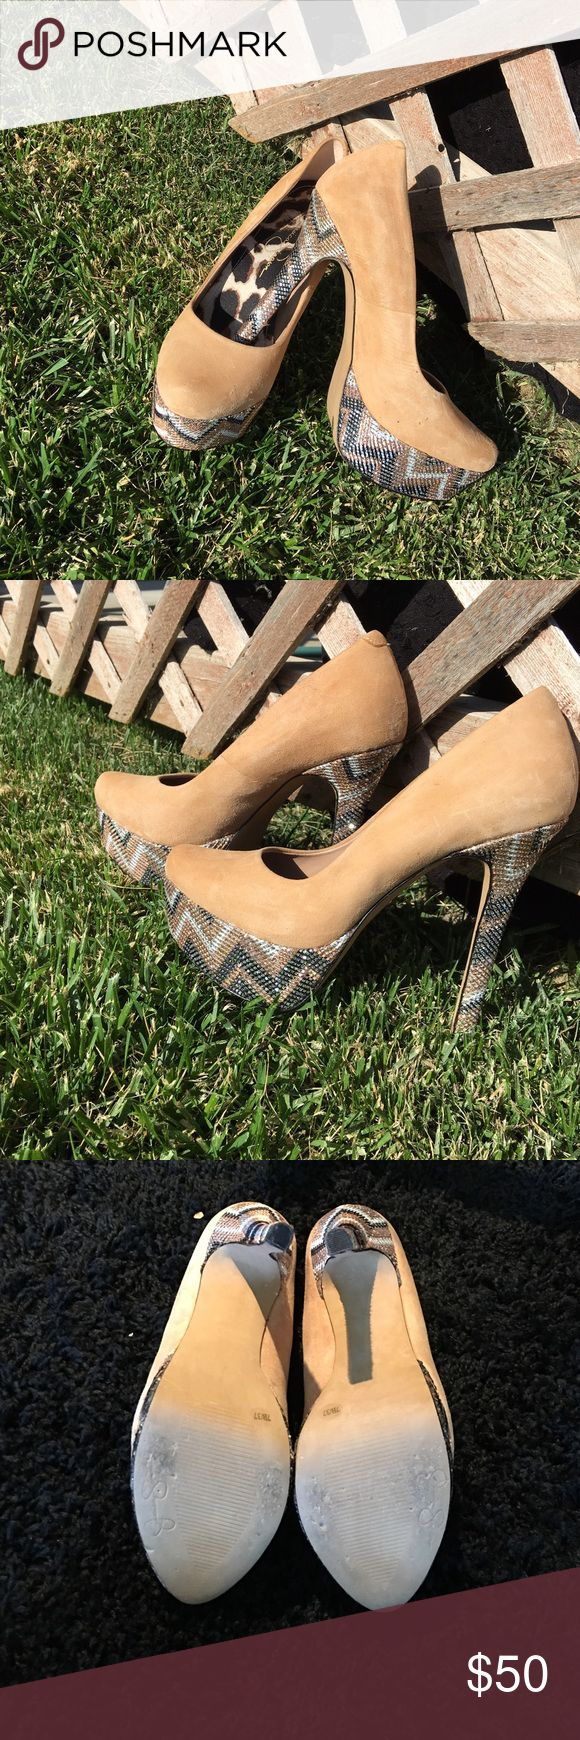 Jessica Simpson suede/glitter Aztec pumps! Adorable nude colored pumps. Suede with rhinestone platform and heel, animal print sole. worn once in perfect condition Jessica Simpson Shoes Platforms